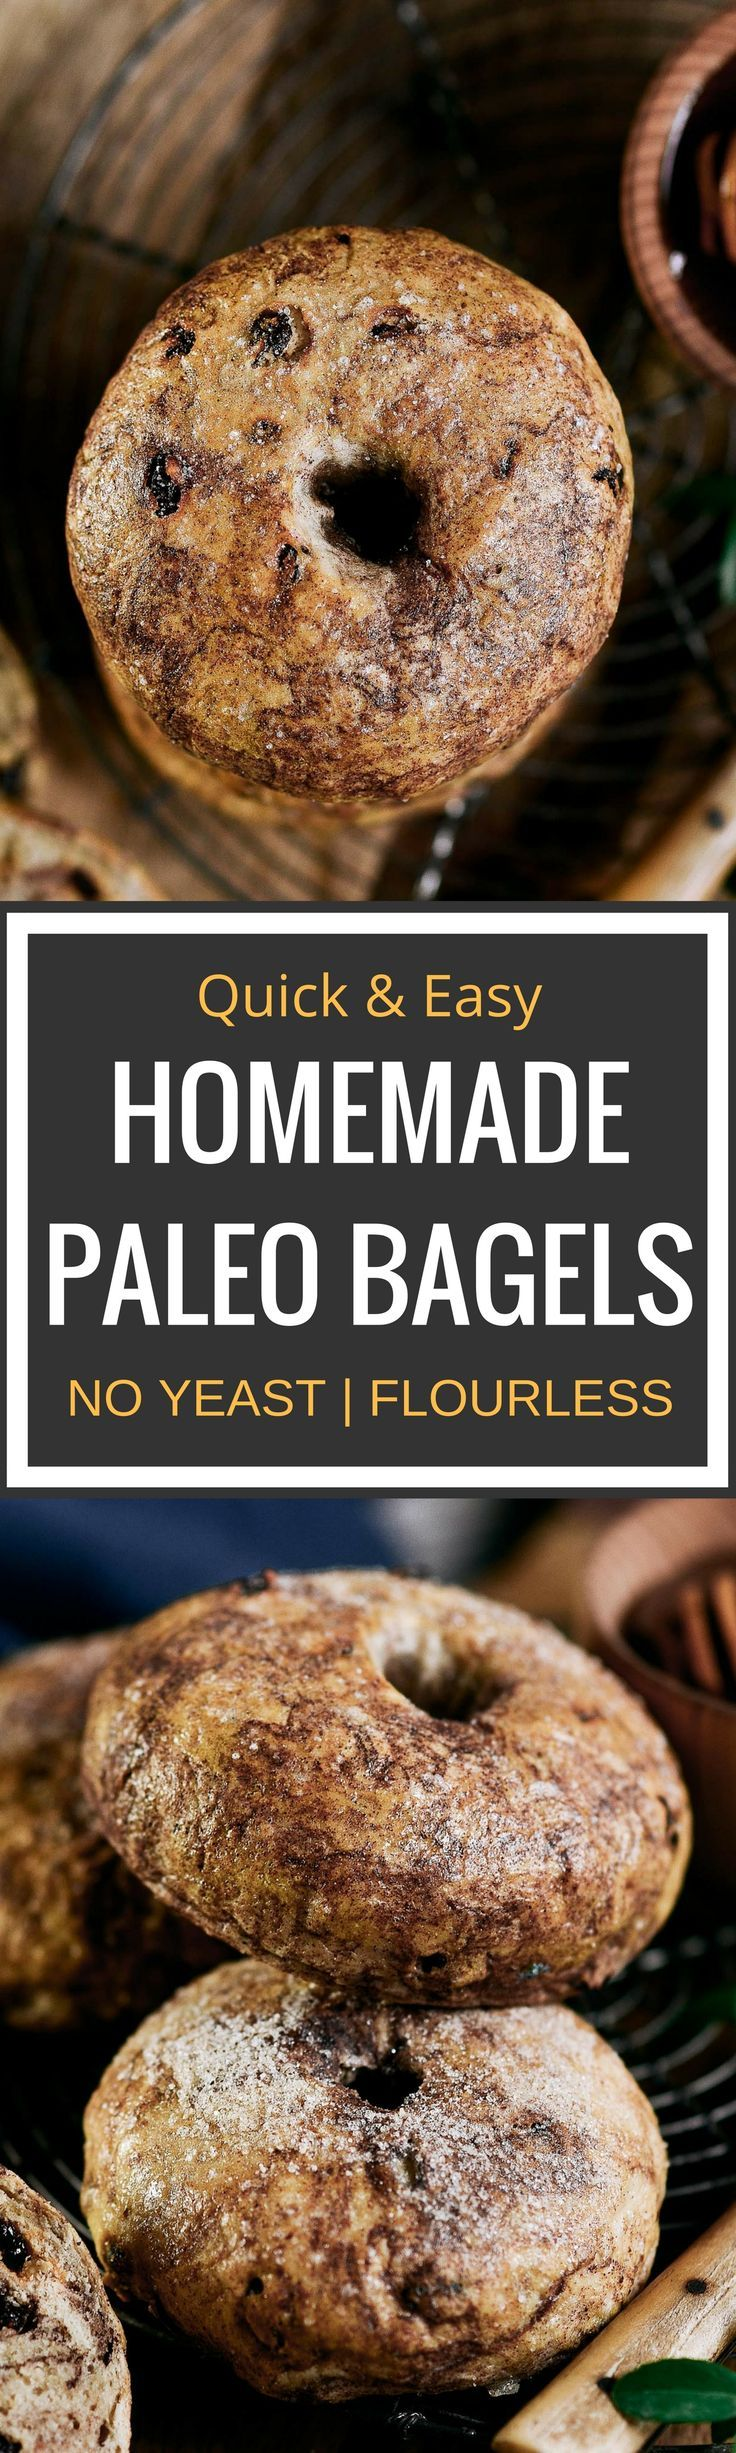 Best homemade bagel recipe! Flourless and gluten free bagel recipe. Looks and tastes like the real thing! Cinnamon swirls with sweet raisins. Paleo Diet bagel recipe. Easy gluten free bread recipe. Quick healthy paleo bread and snack.